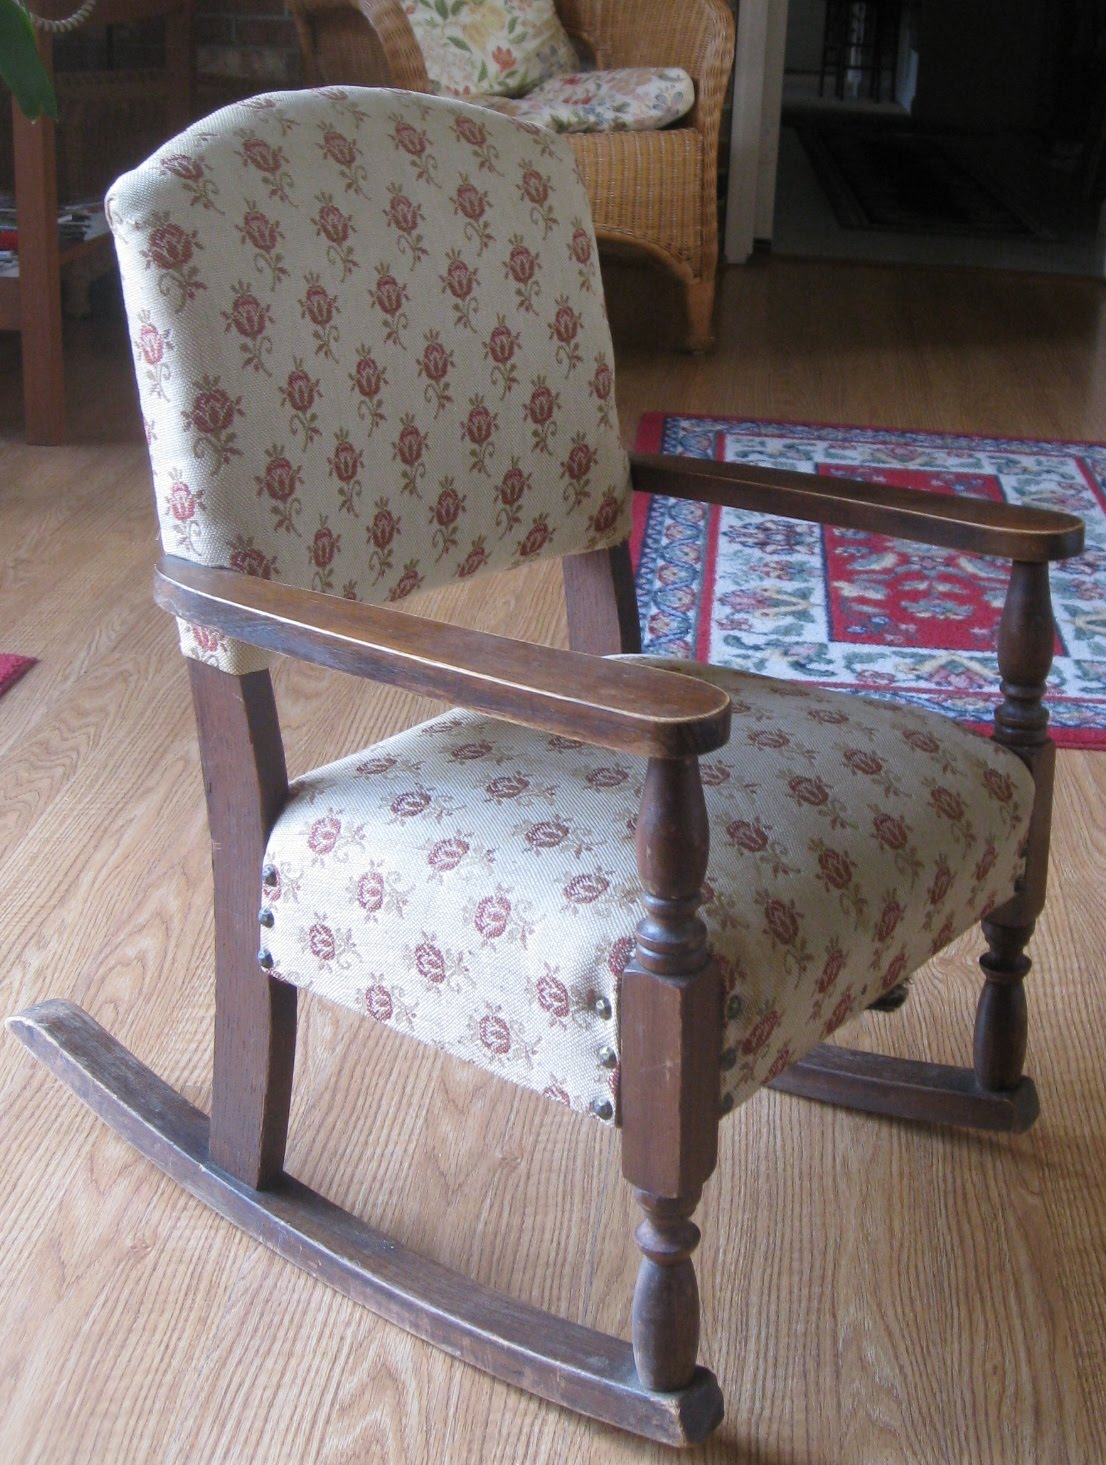 Aunt Priscilla Has A Rocking Chair Wedding Covers Inverness Monkey See Do Reupholstery Project